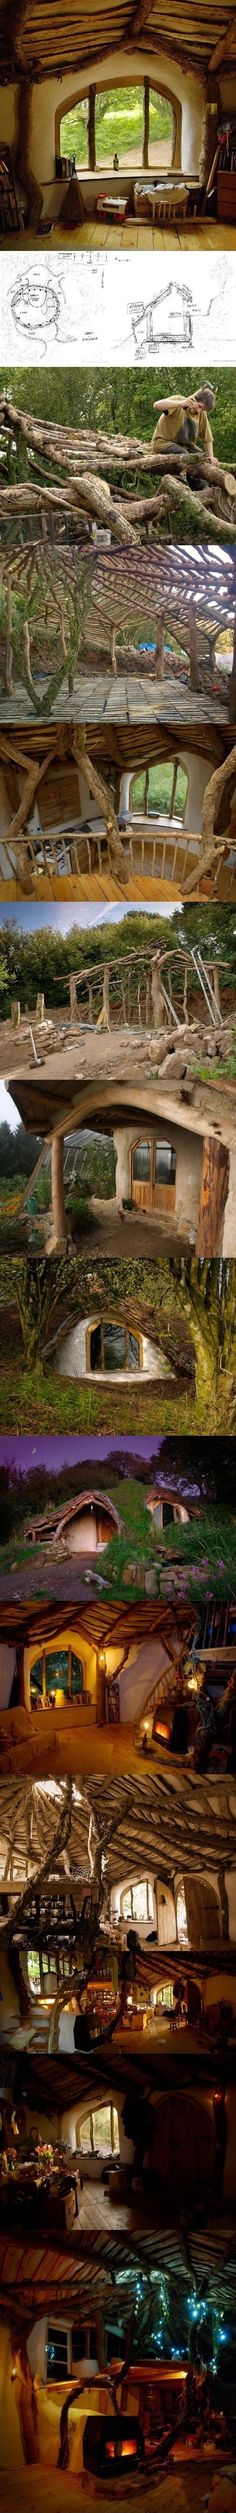 How to build a hobbit house OMG I can build my own hobbit hole!!!!